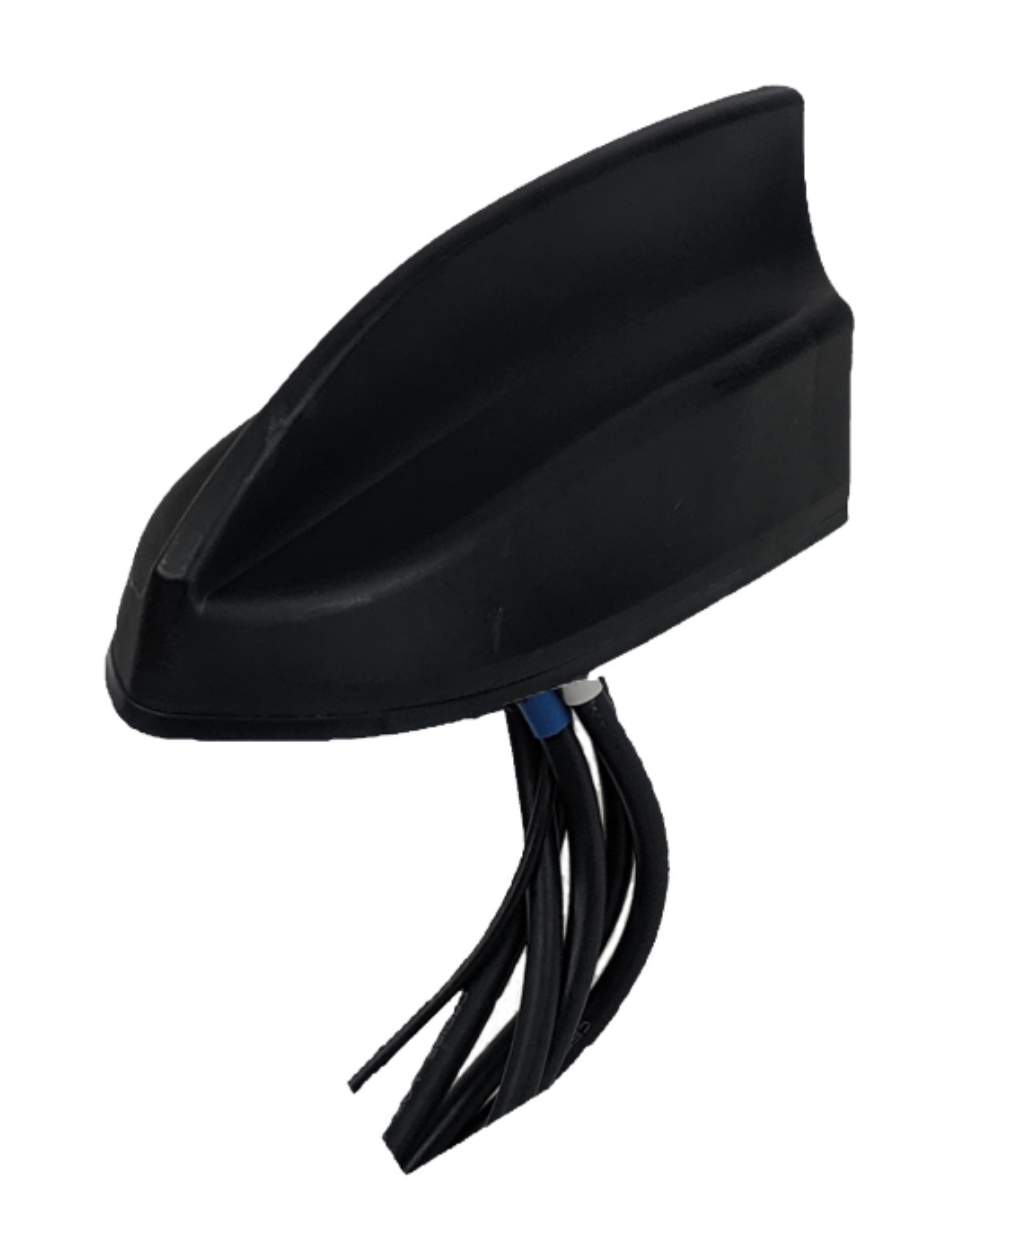 RMXD-G44-15-SSS-B: Shark Fin Antenna with 1x GPS, 2x LTE, and 3x SMA-Male Connectors